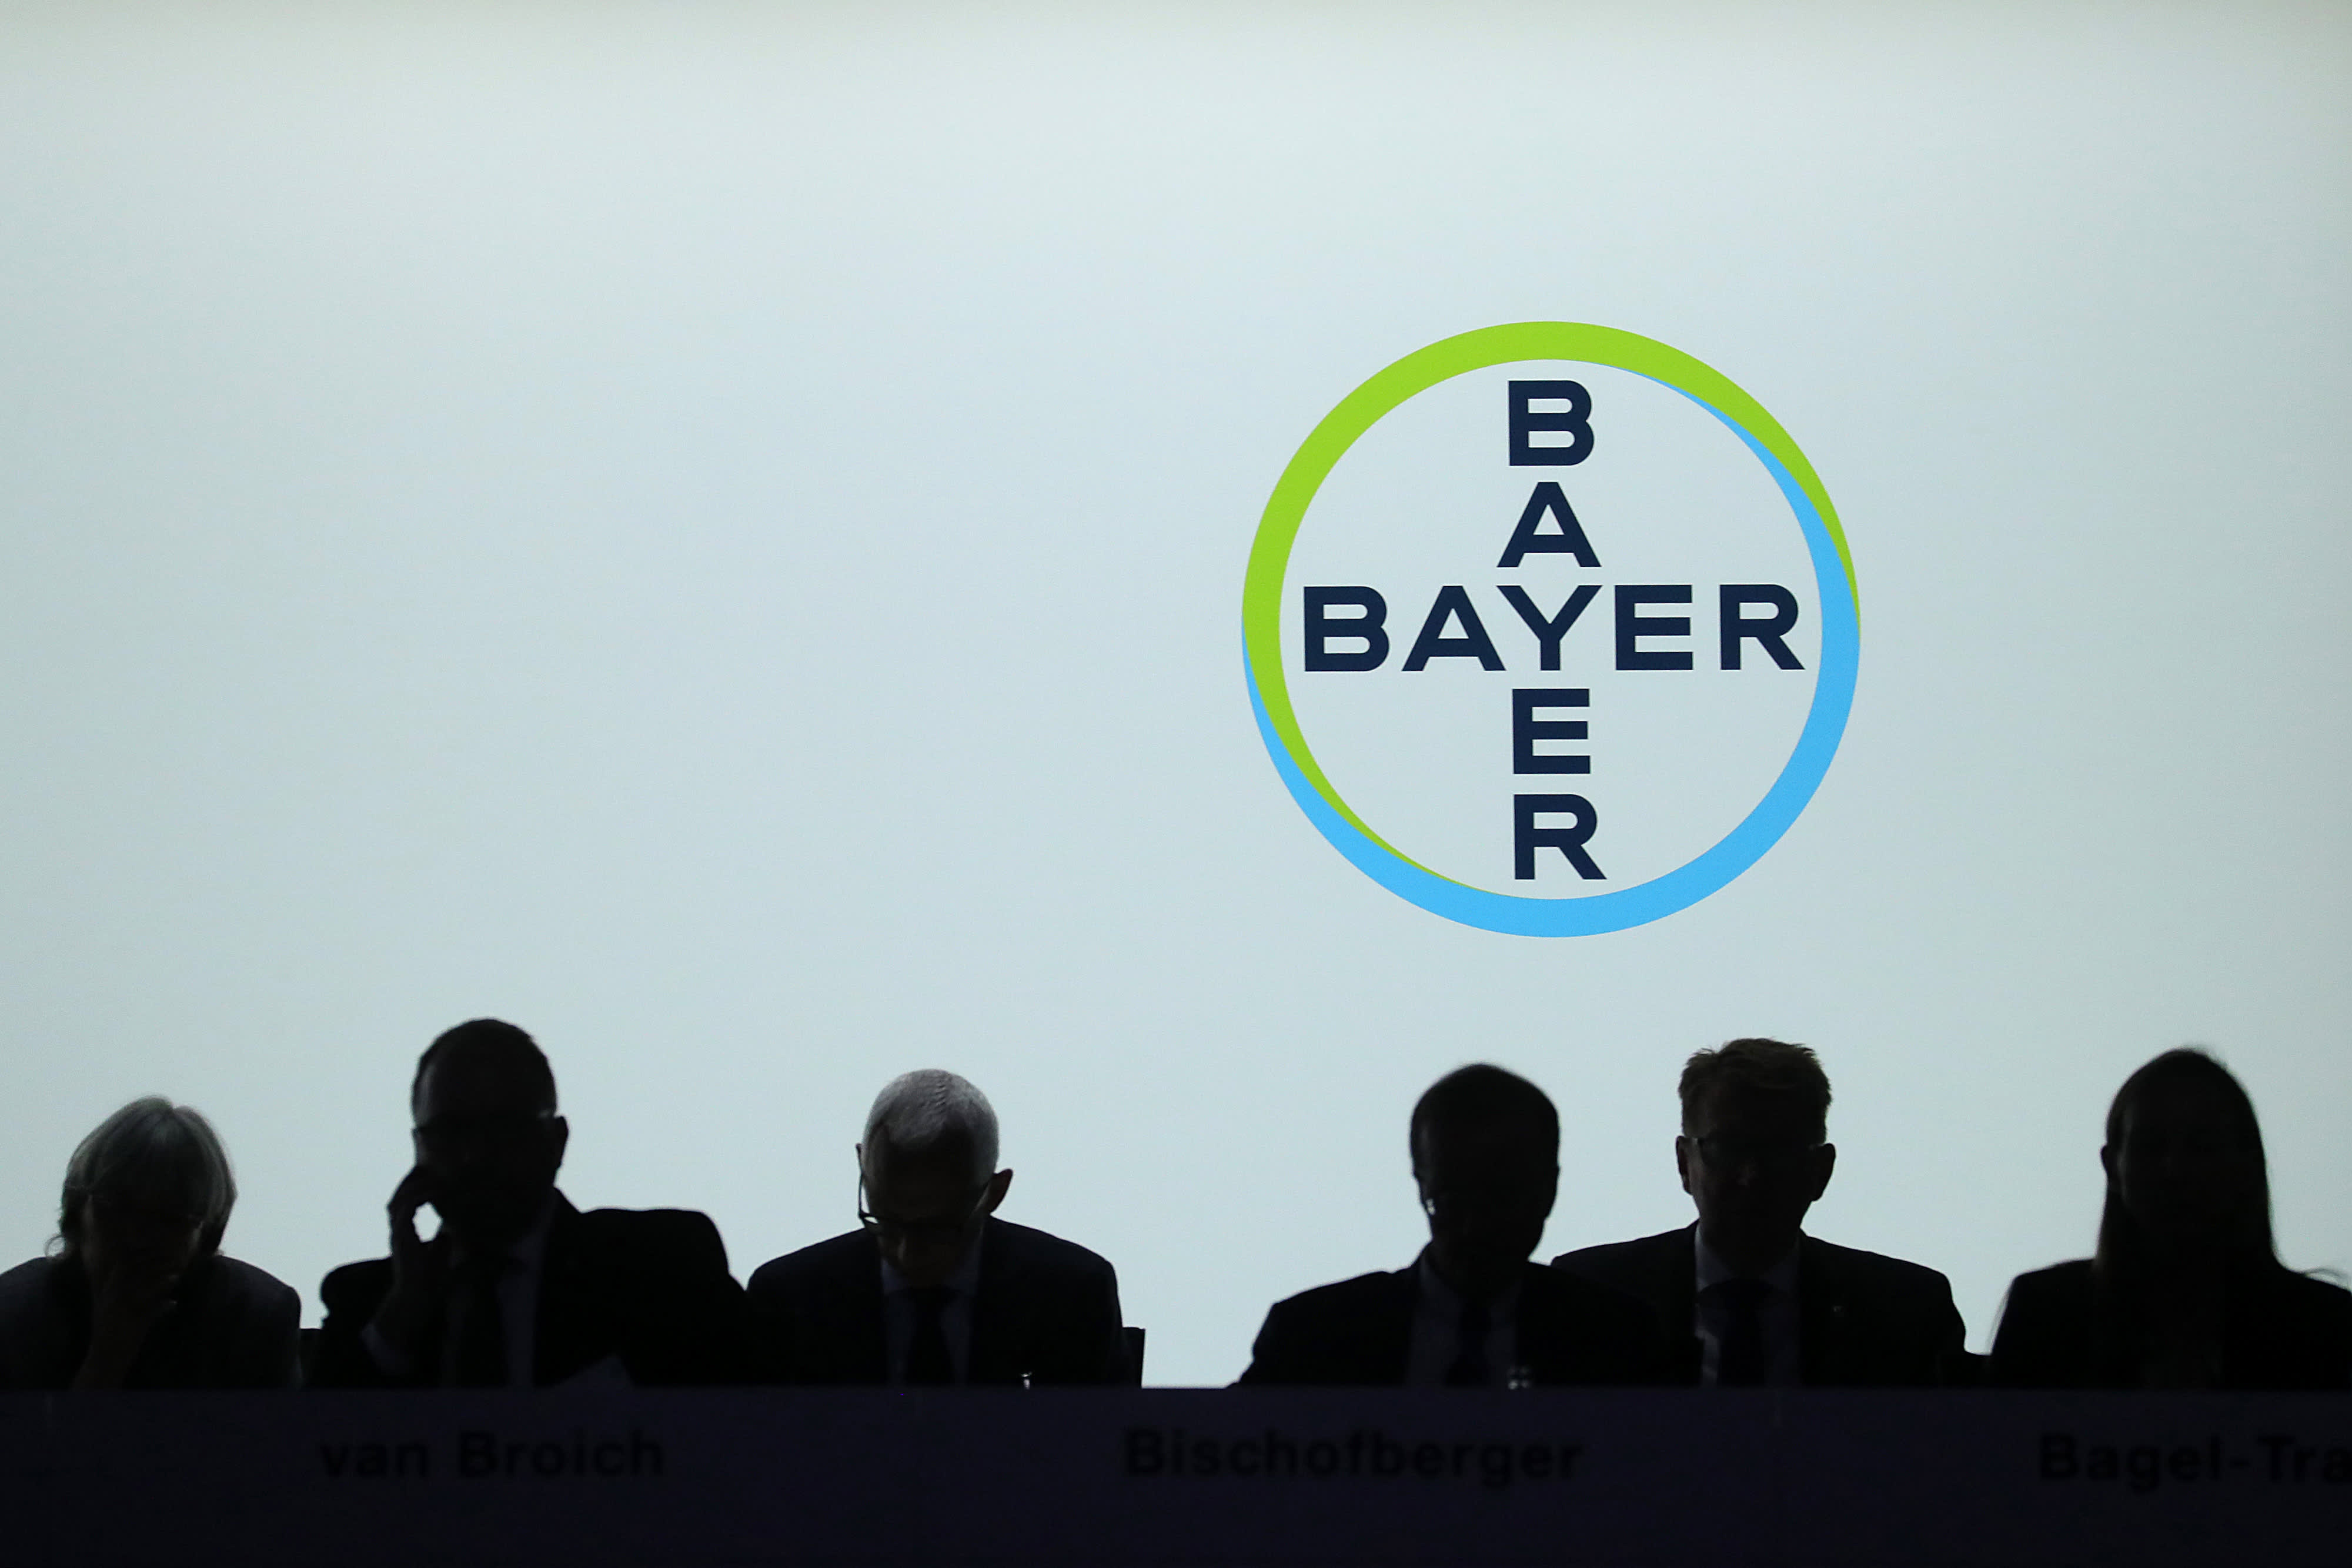 With drugs pipeline in focus, Bayer considers job cuts: Source